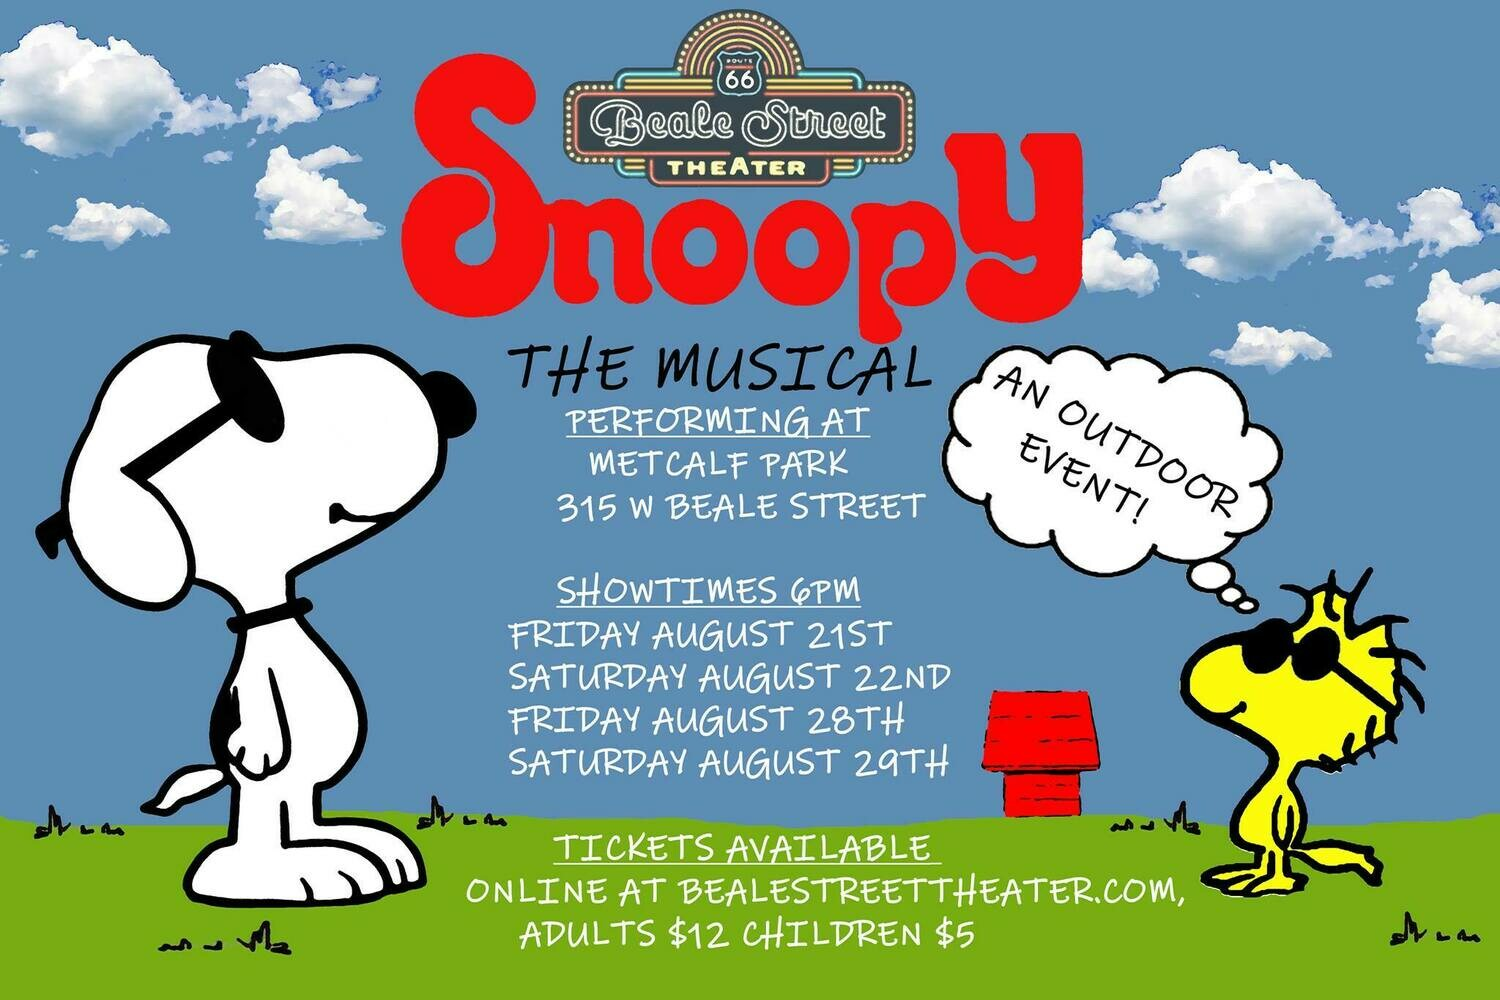 Snoopy August 28th Child Ticket